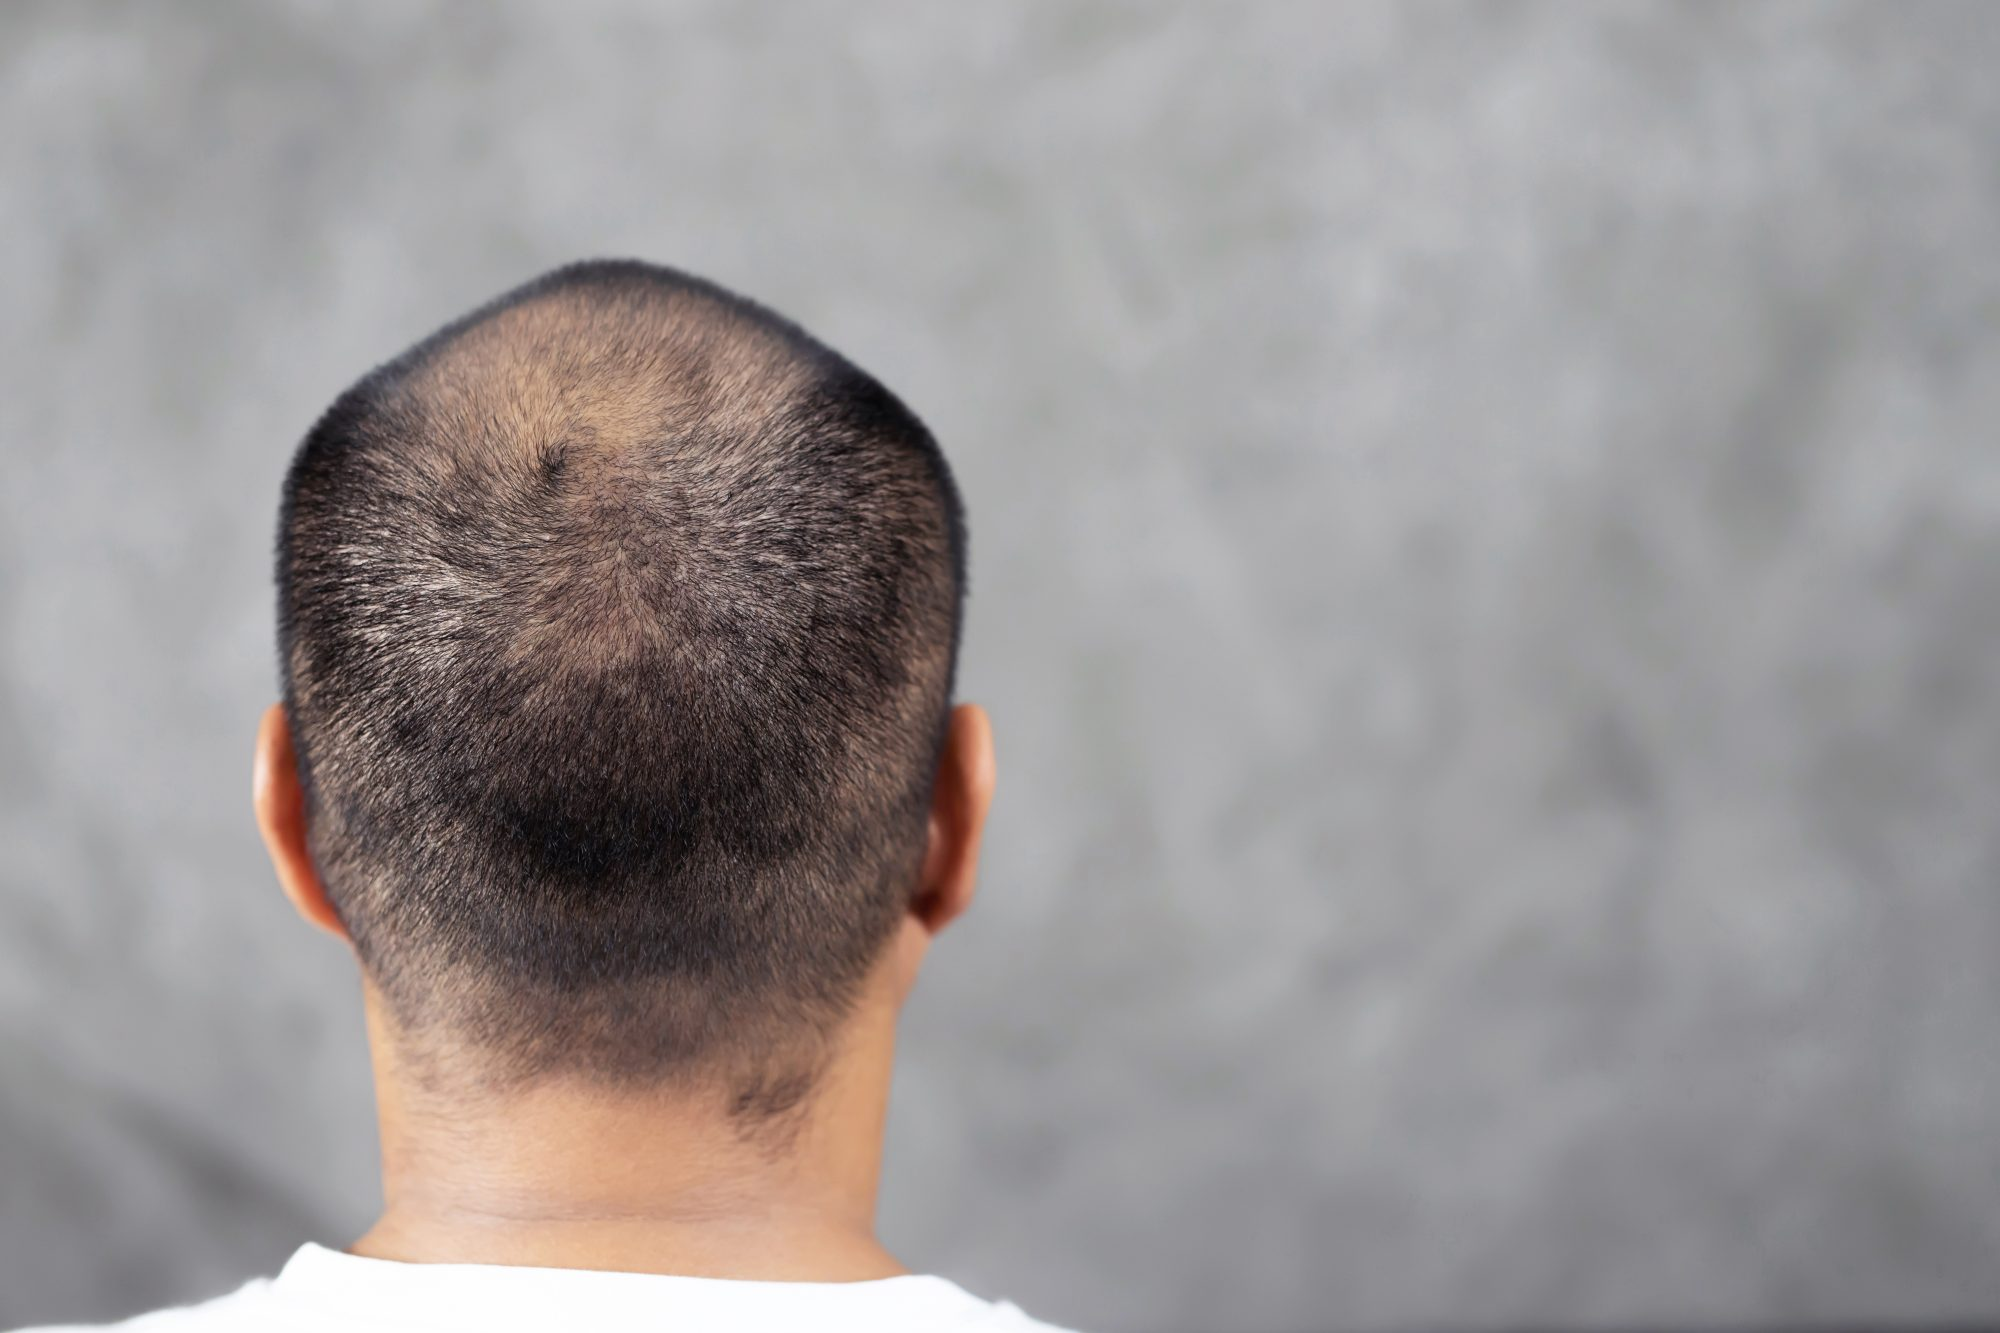 FactCheck: are bald men at greater risk of severe coronavirus illness? - channel 4